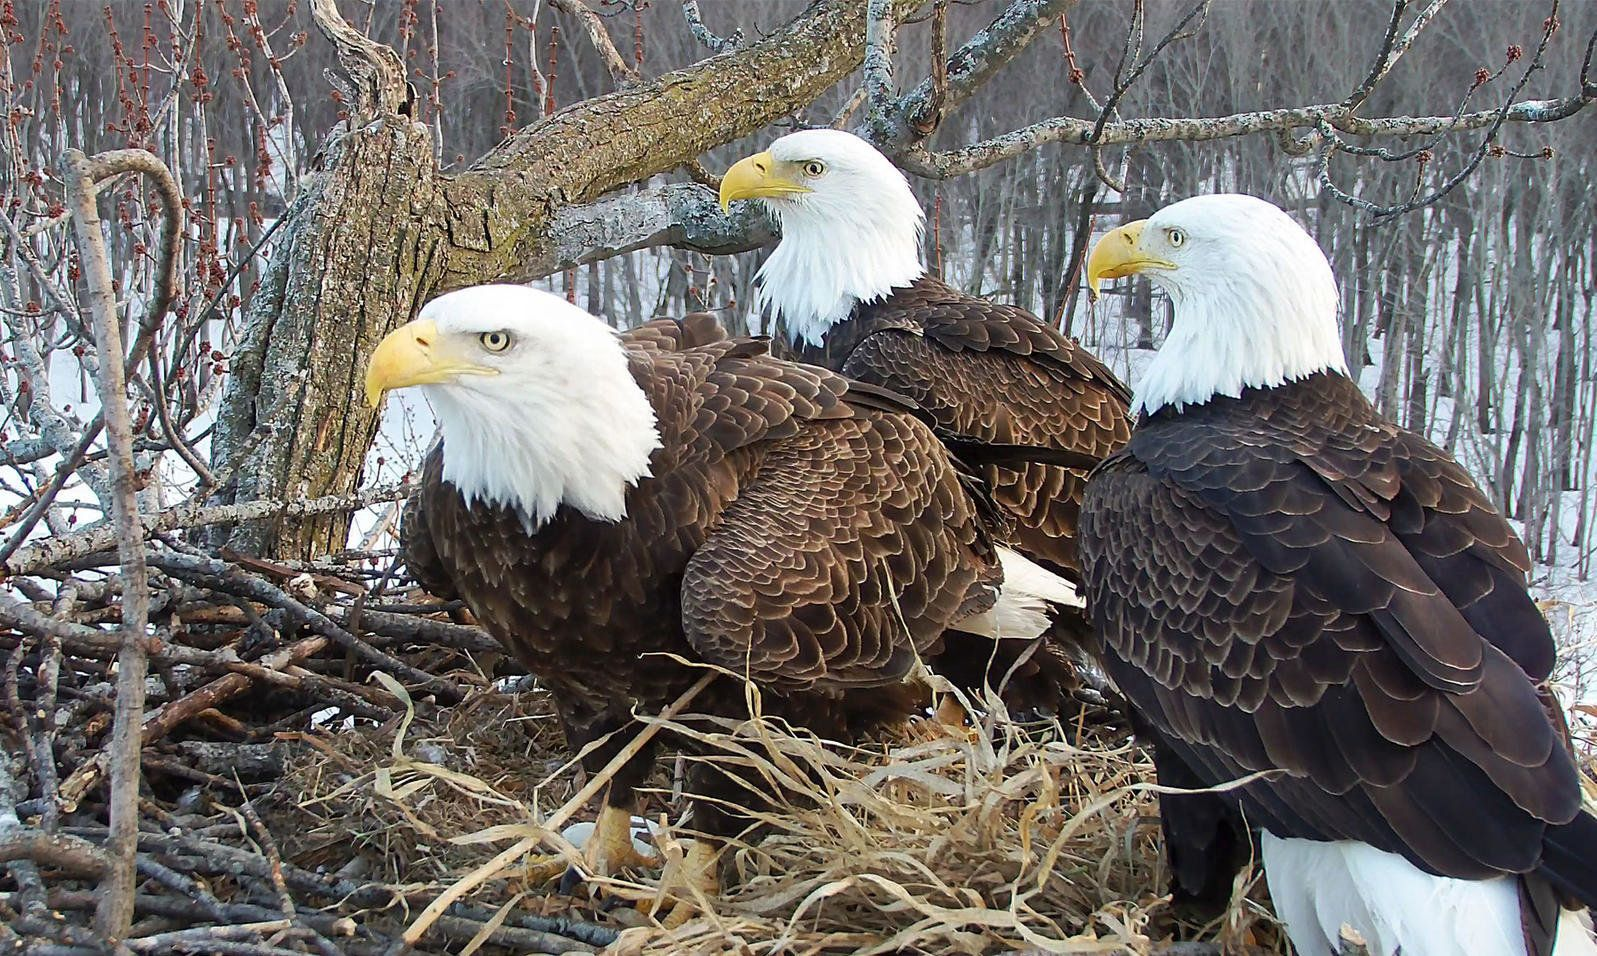 Eagle threesome